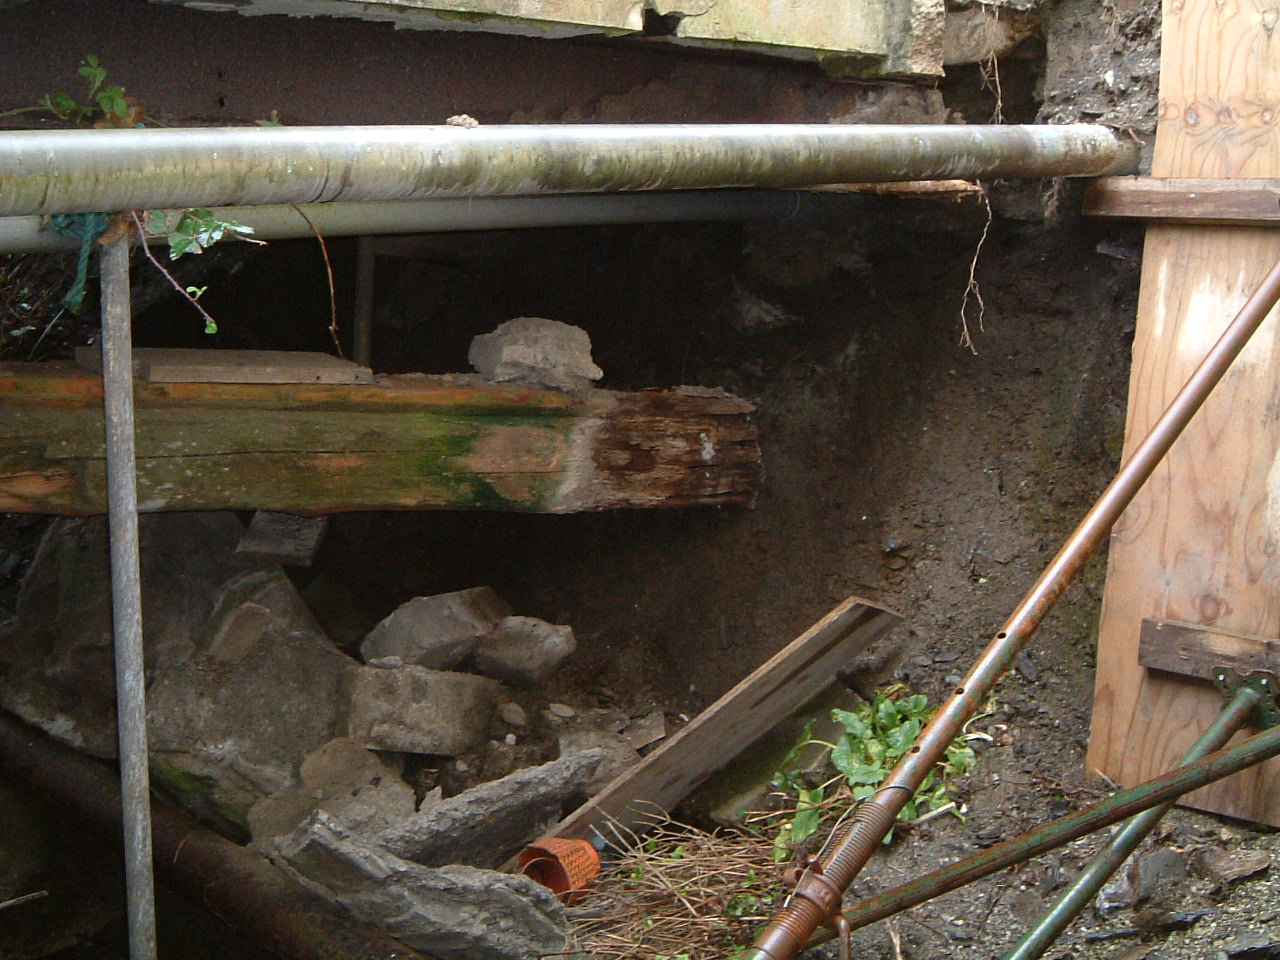 Damage to beams and abutments